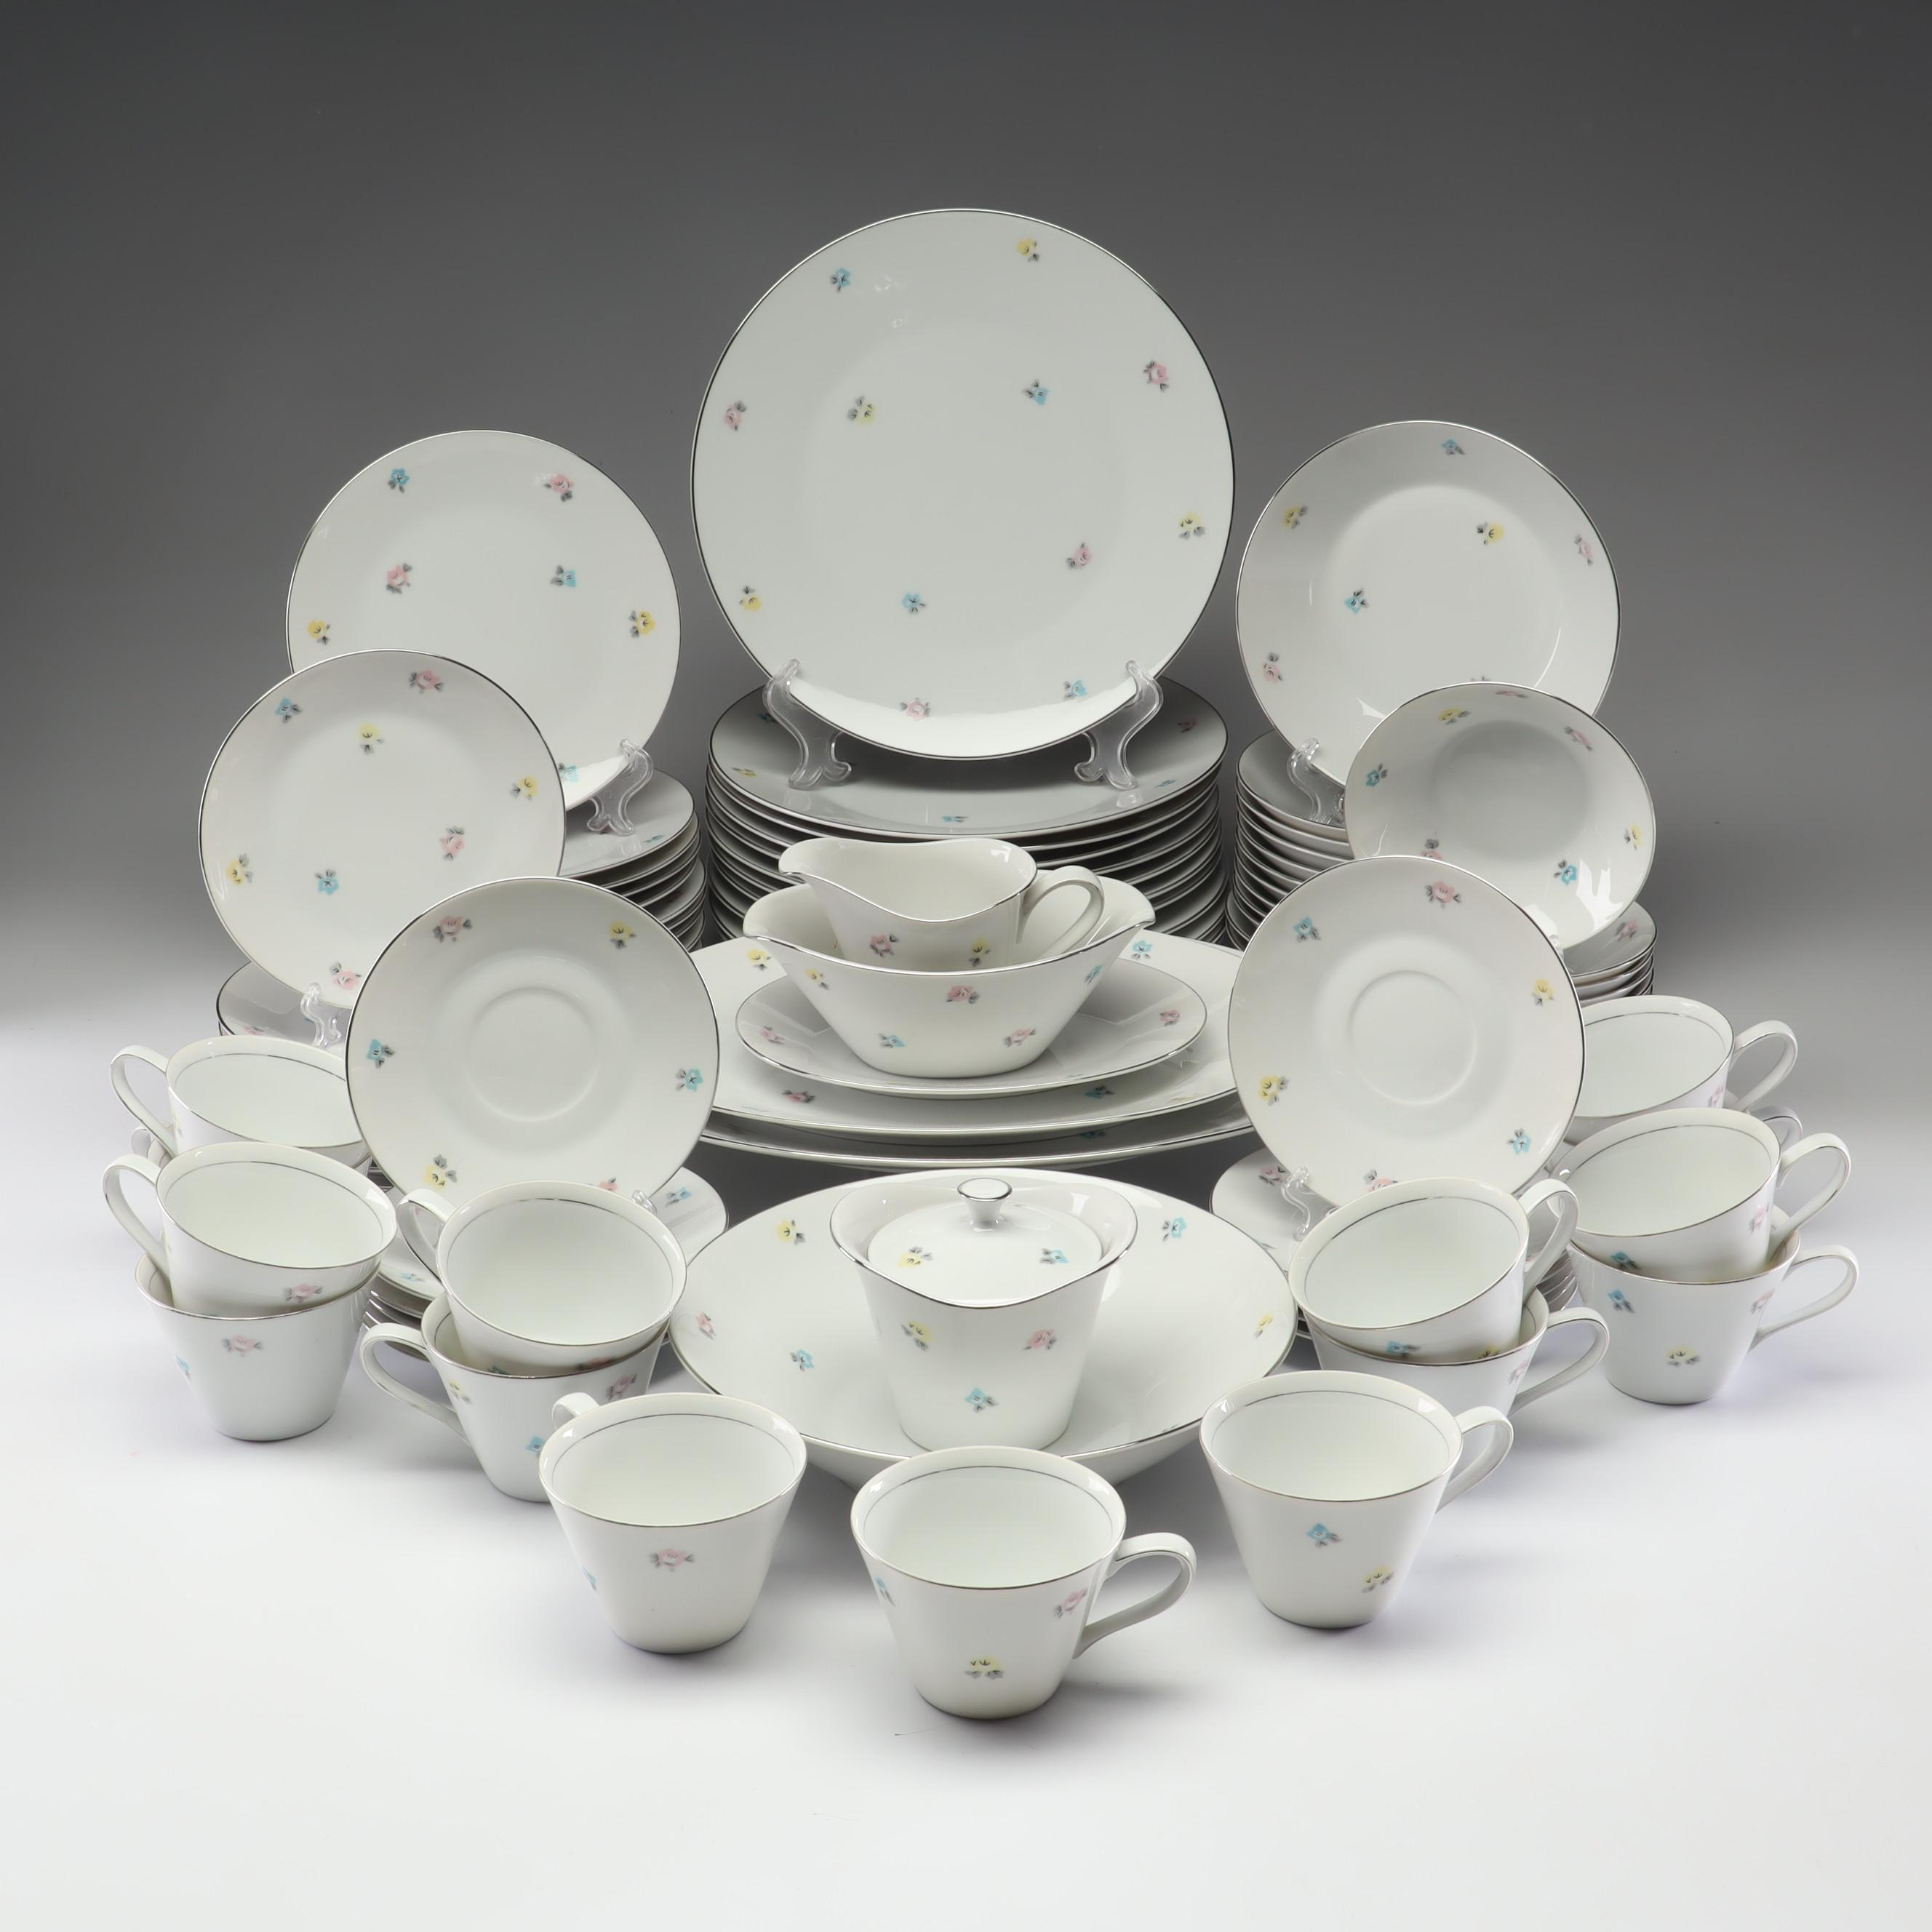 """Arlen Fine China """"Spice"""" Dinner and Tea Set with Silver Trim"""